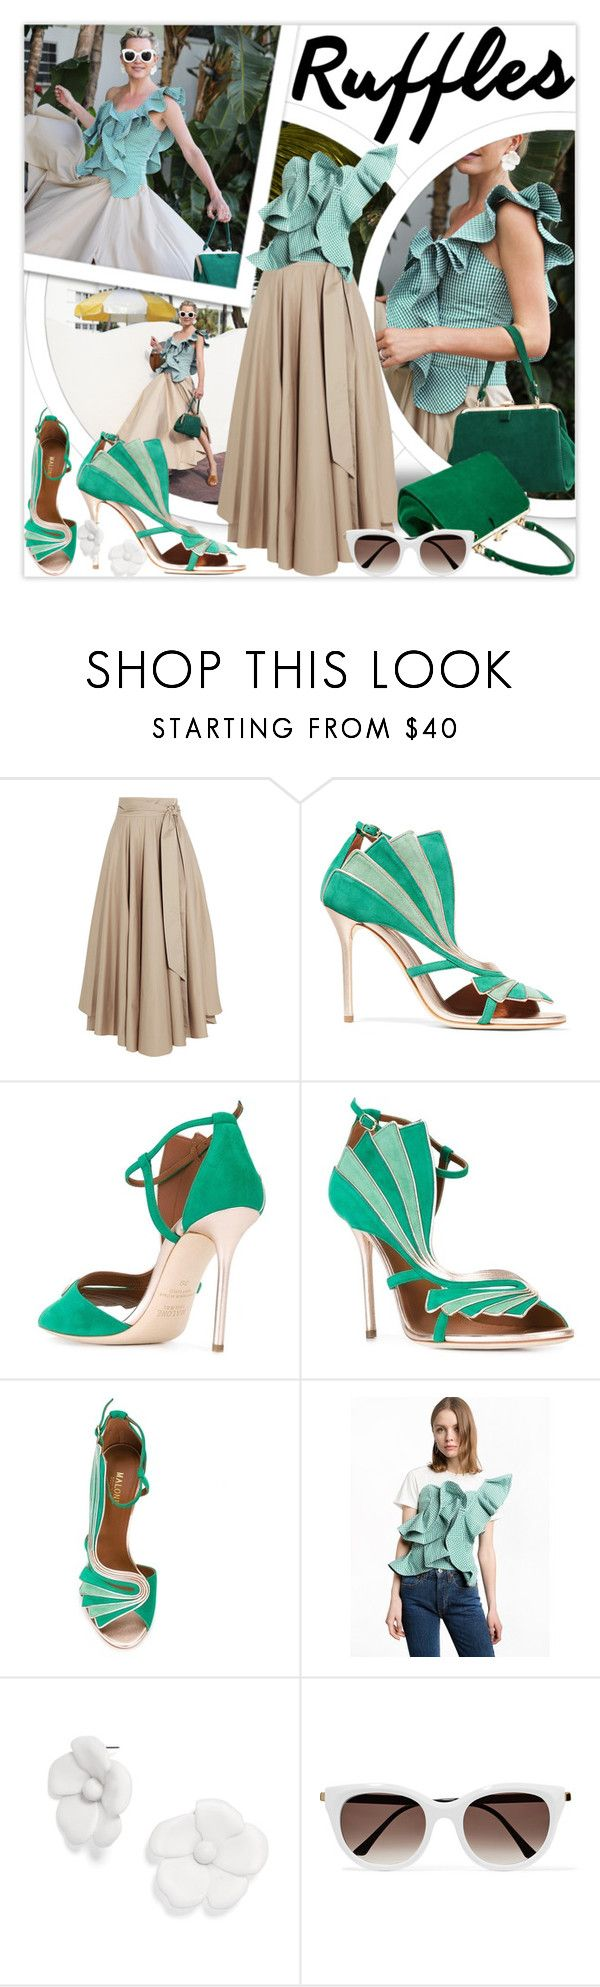 """""""Add Some Flair: Green Gingham Ruffled Top"""" by lucky-ruby ❤ liked on Polyvore featuring TIBI, Malone Souliers, Thierry Lasry, GREEN, gingham and ruffledtops"""